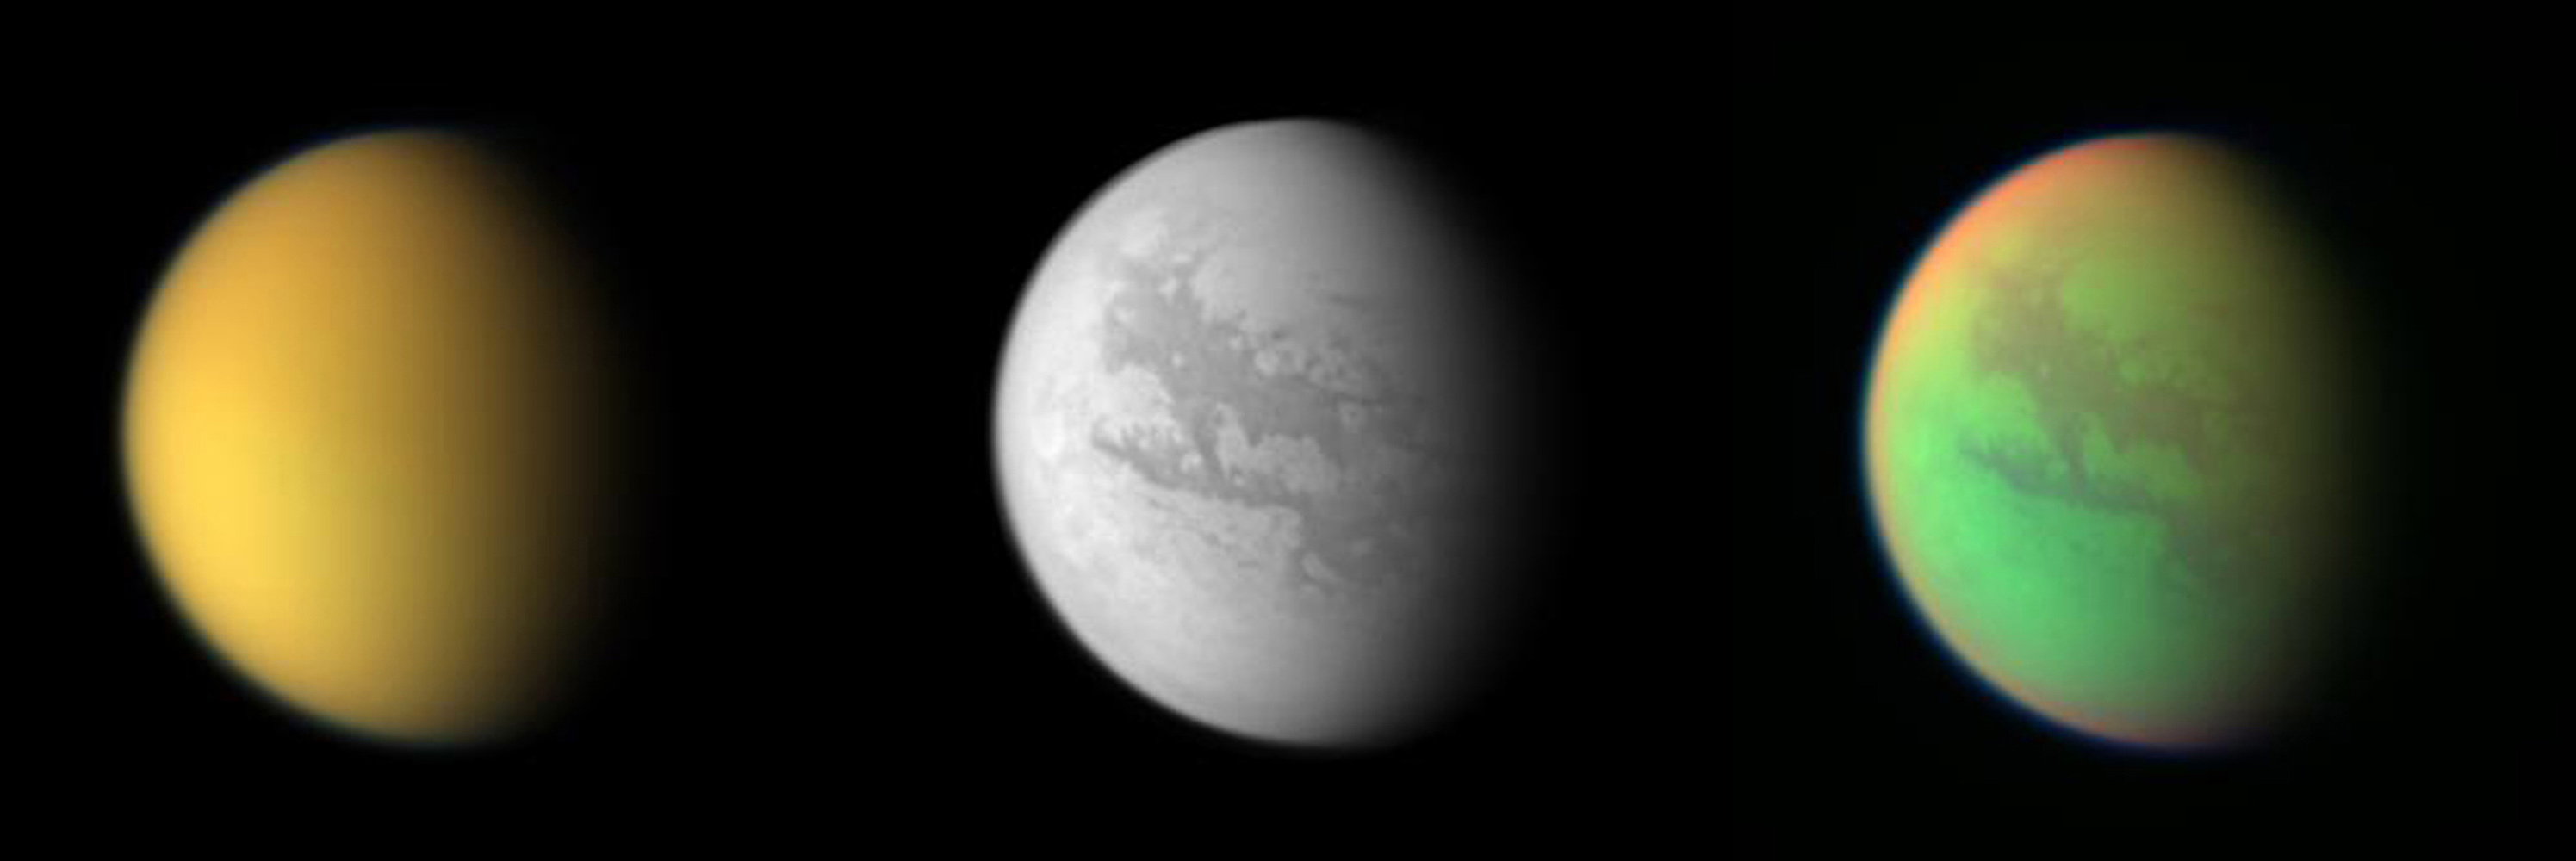 Cassini's Three Views of Titan